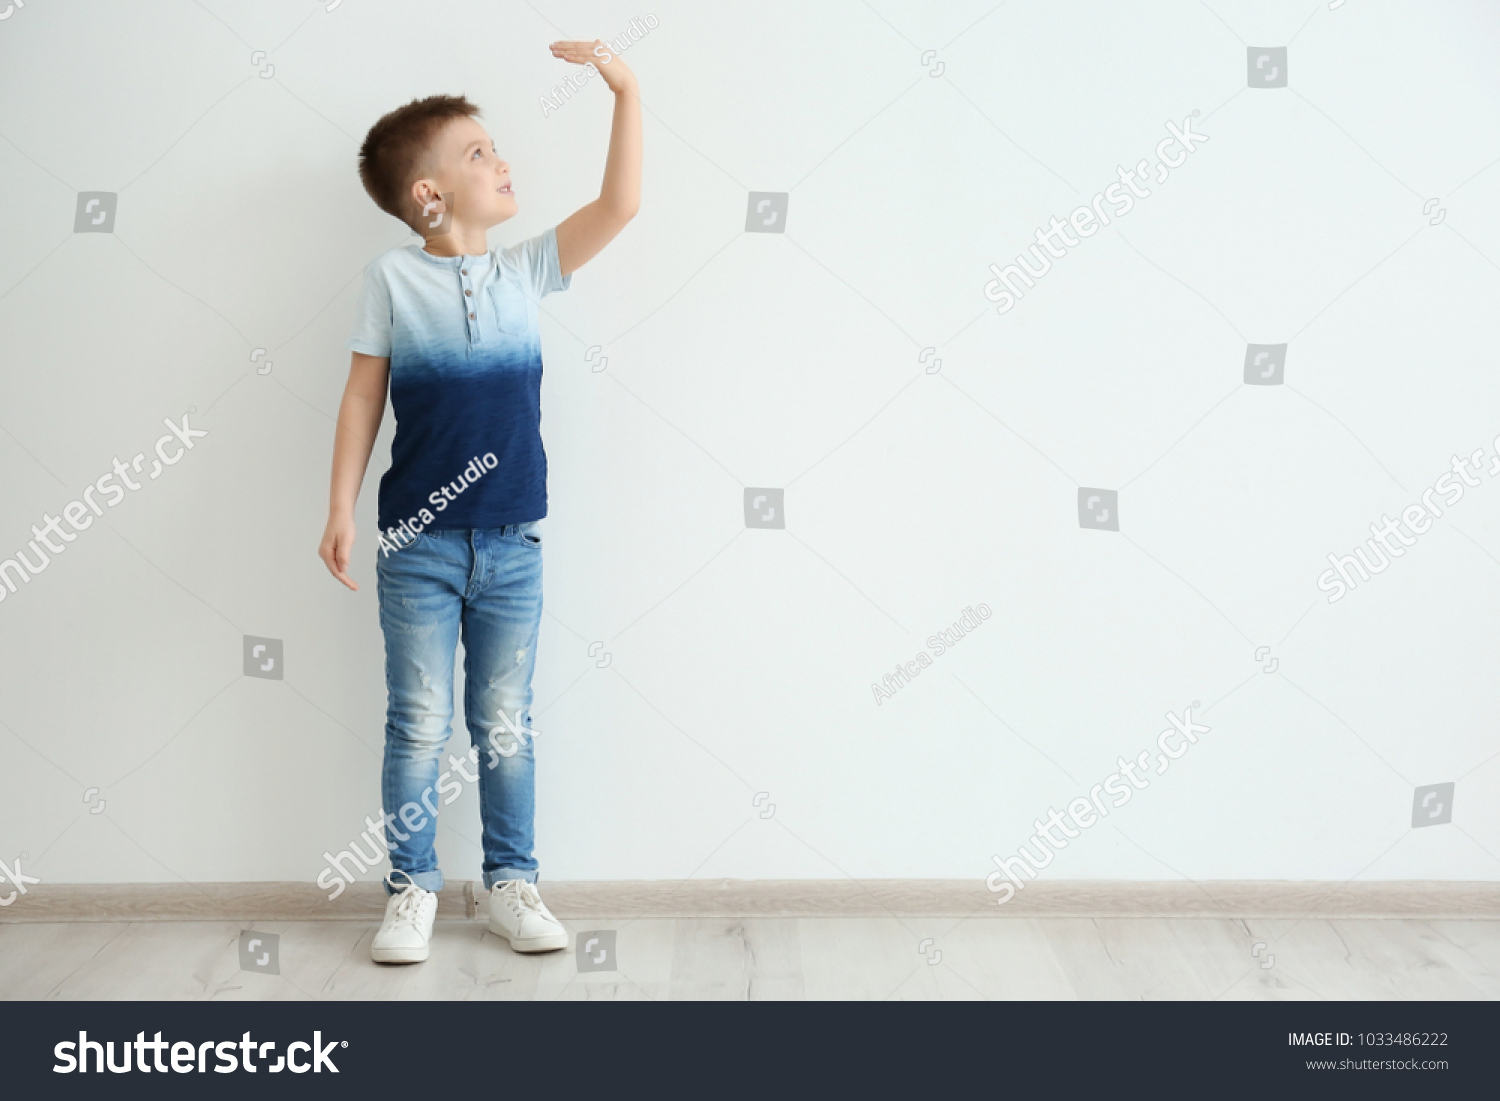 Little boy measuring height near light wall #1033486222